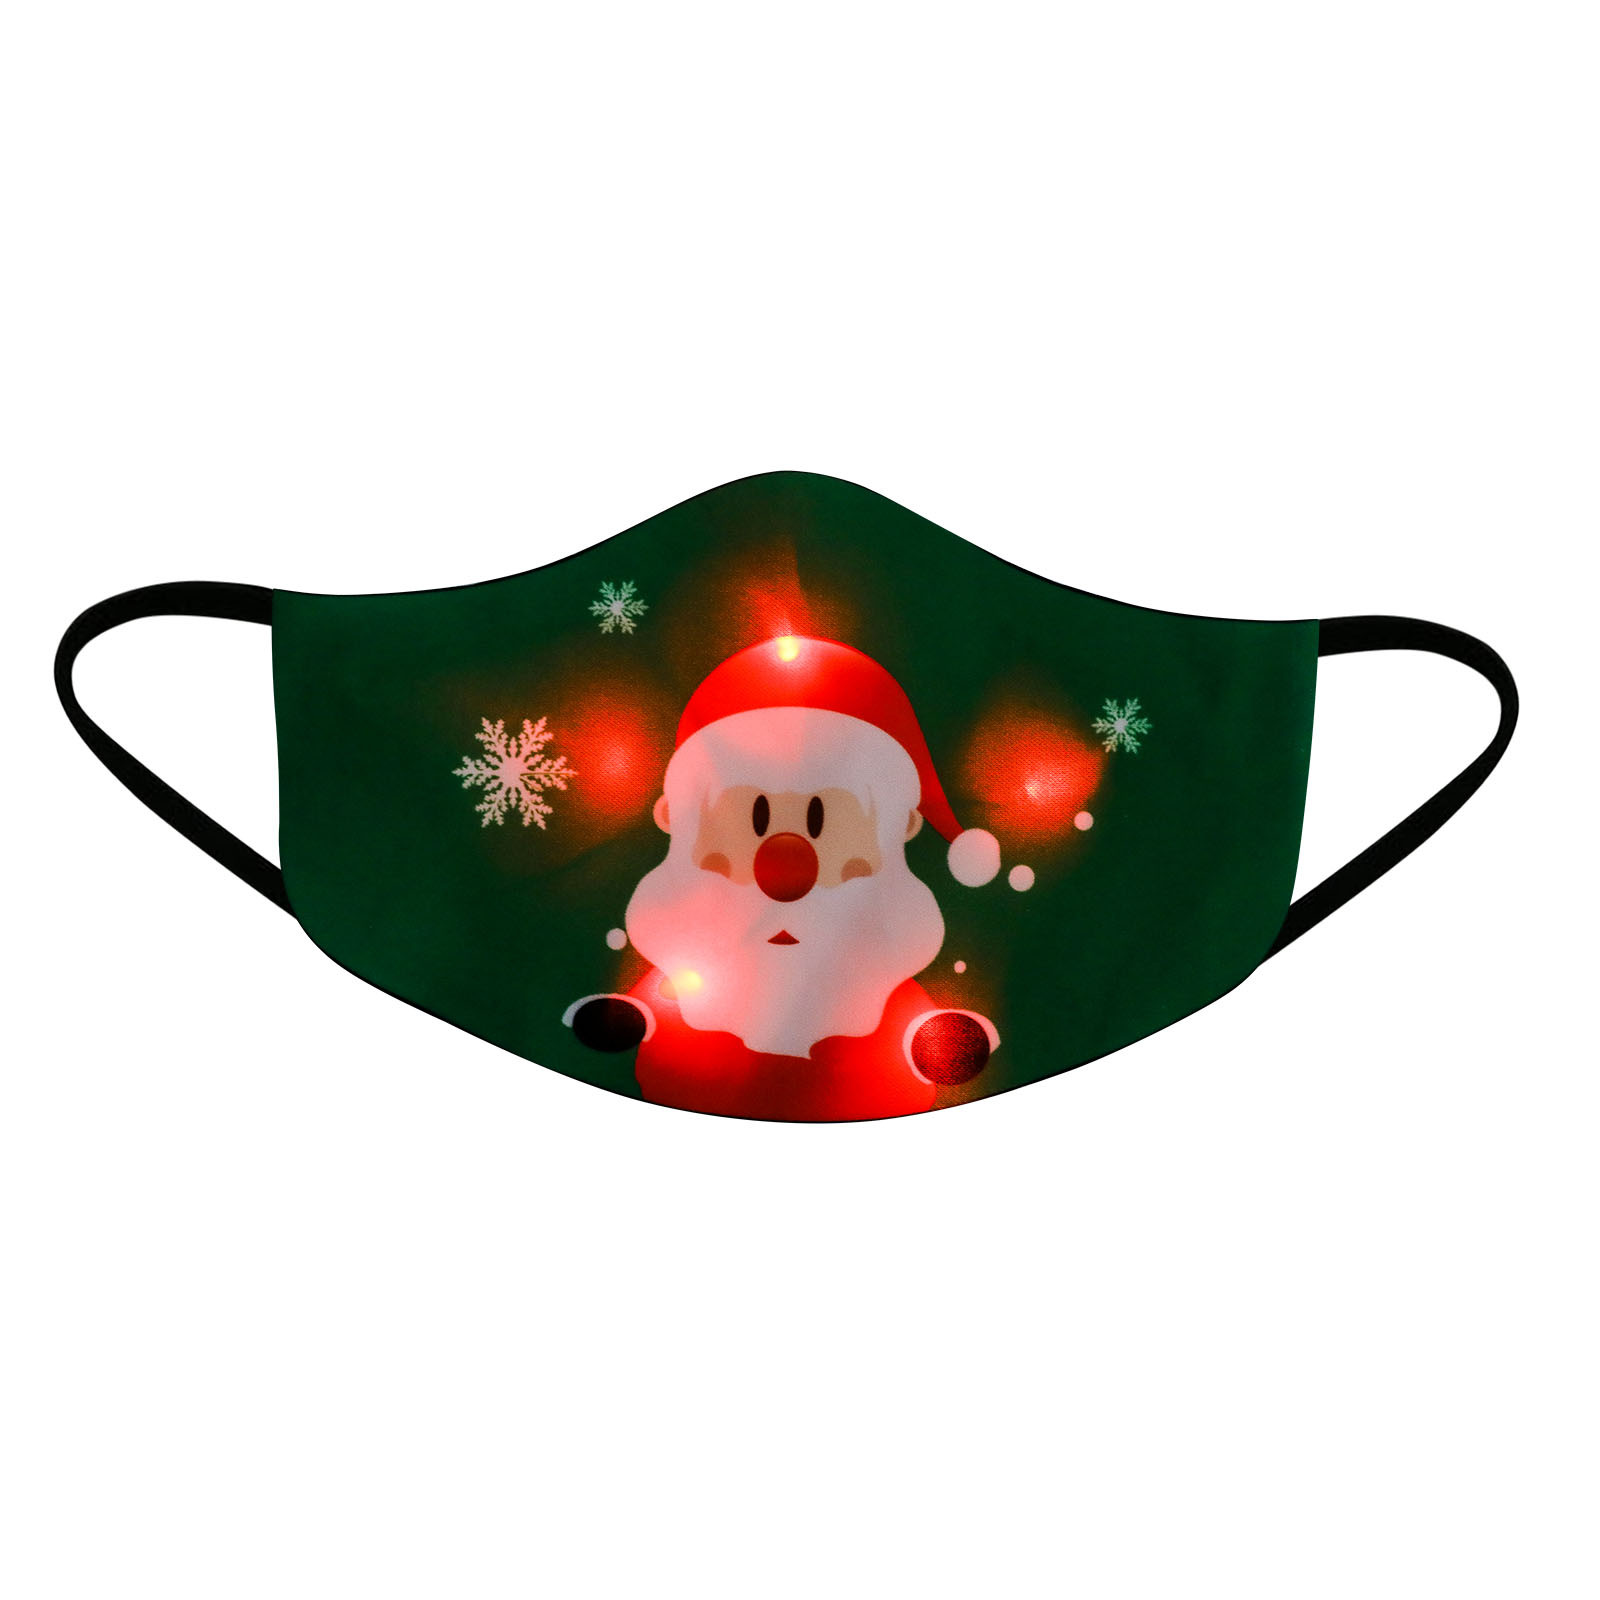 Reusable Christmas Party Masks Led Light Up Glowing Merry Xmas Cloth Face Mask For Men